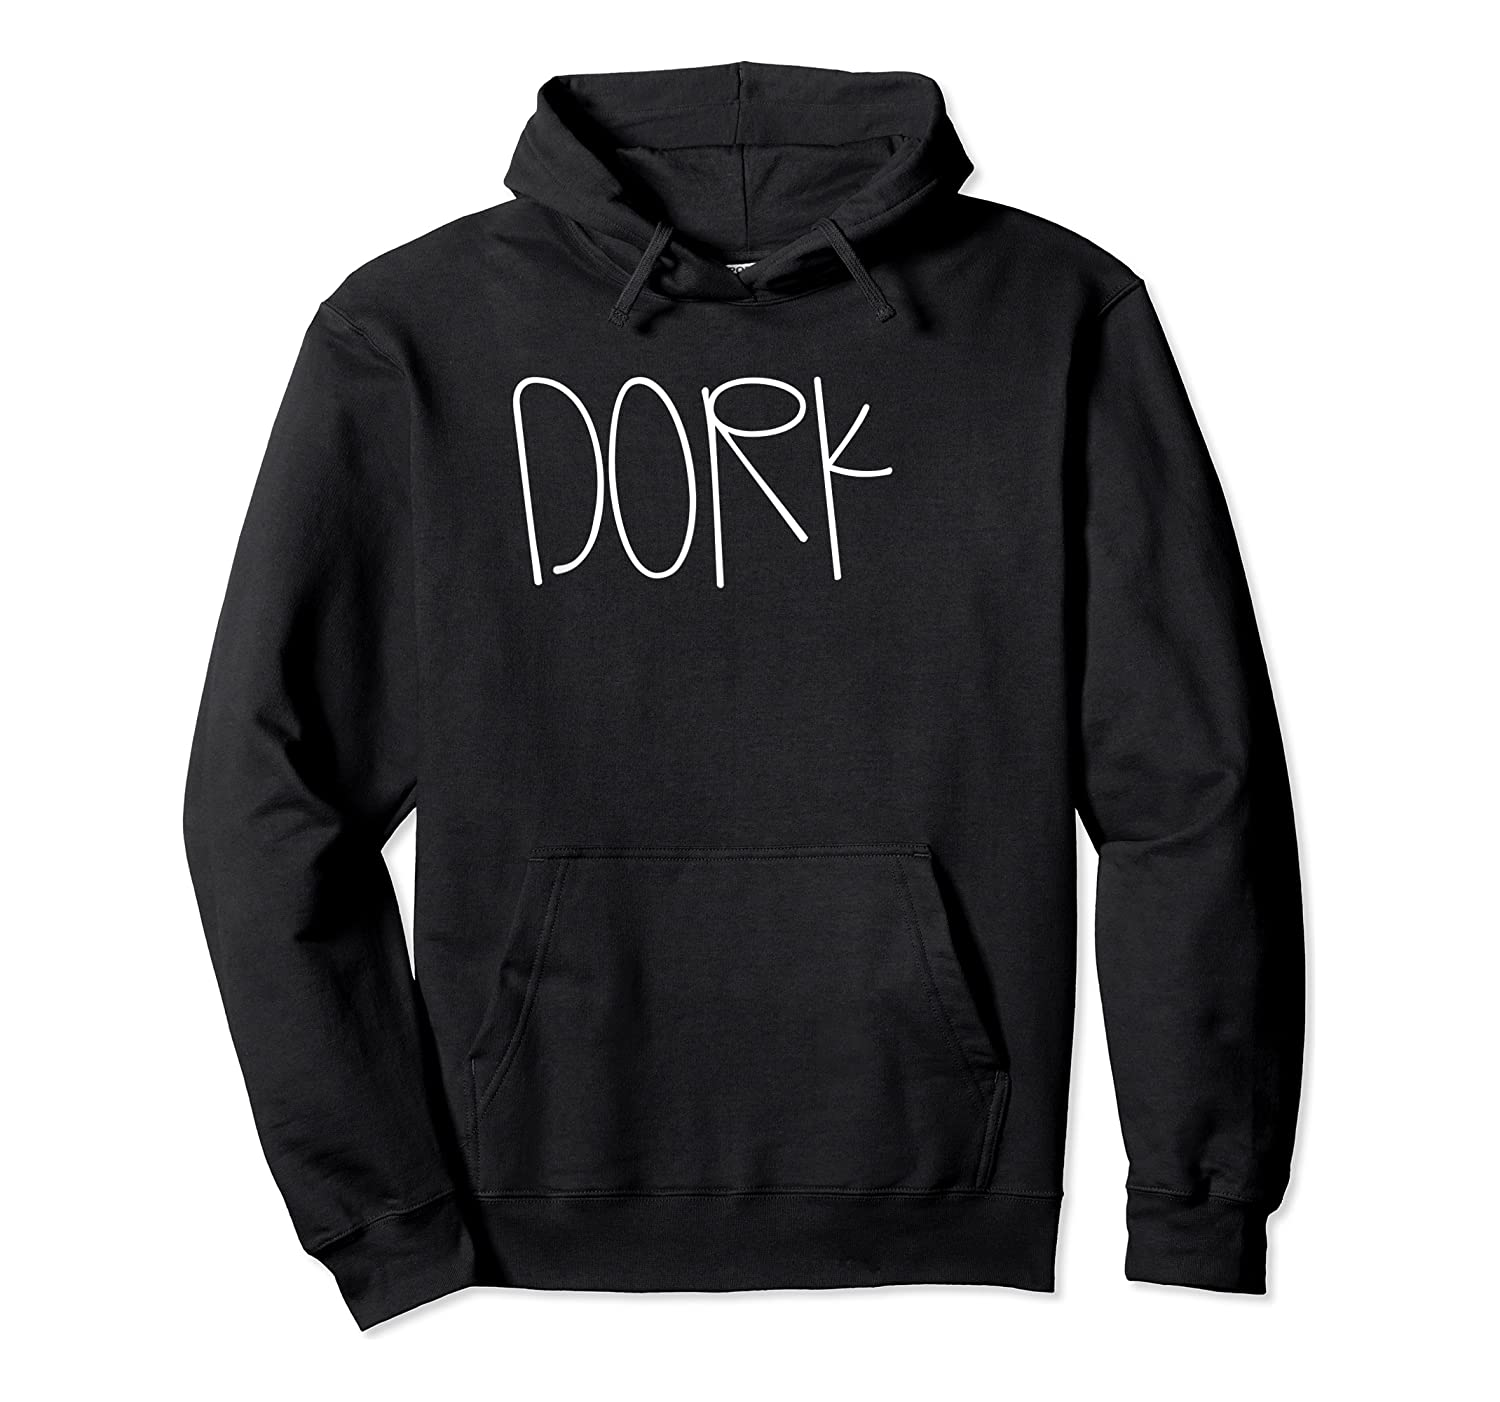 Funny Cute Dork Gift T Shirt - Adorkable T-shirt Unisex Pullover Hoodie